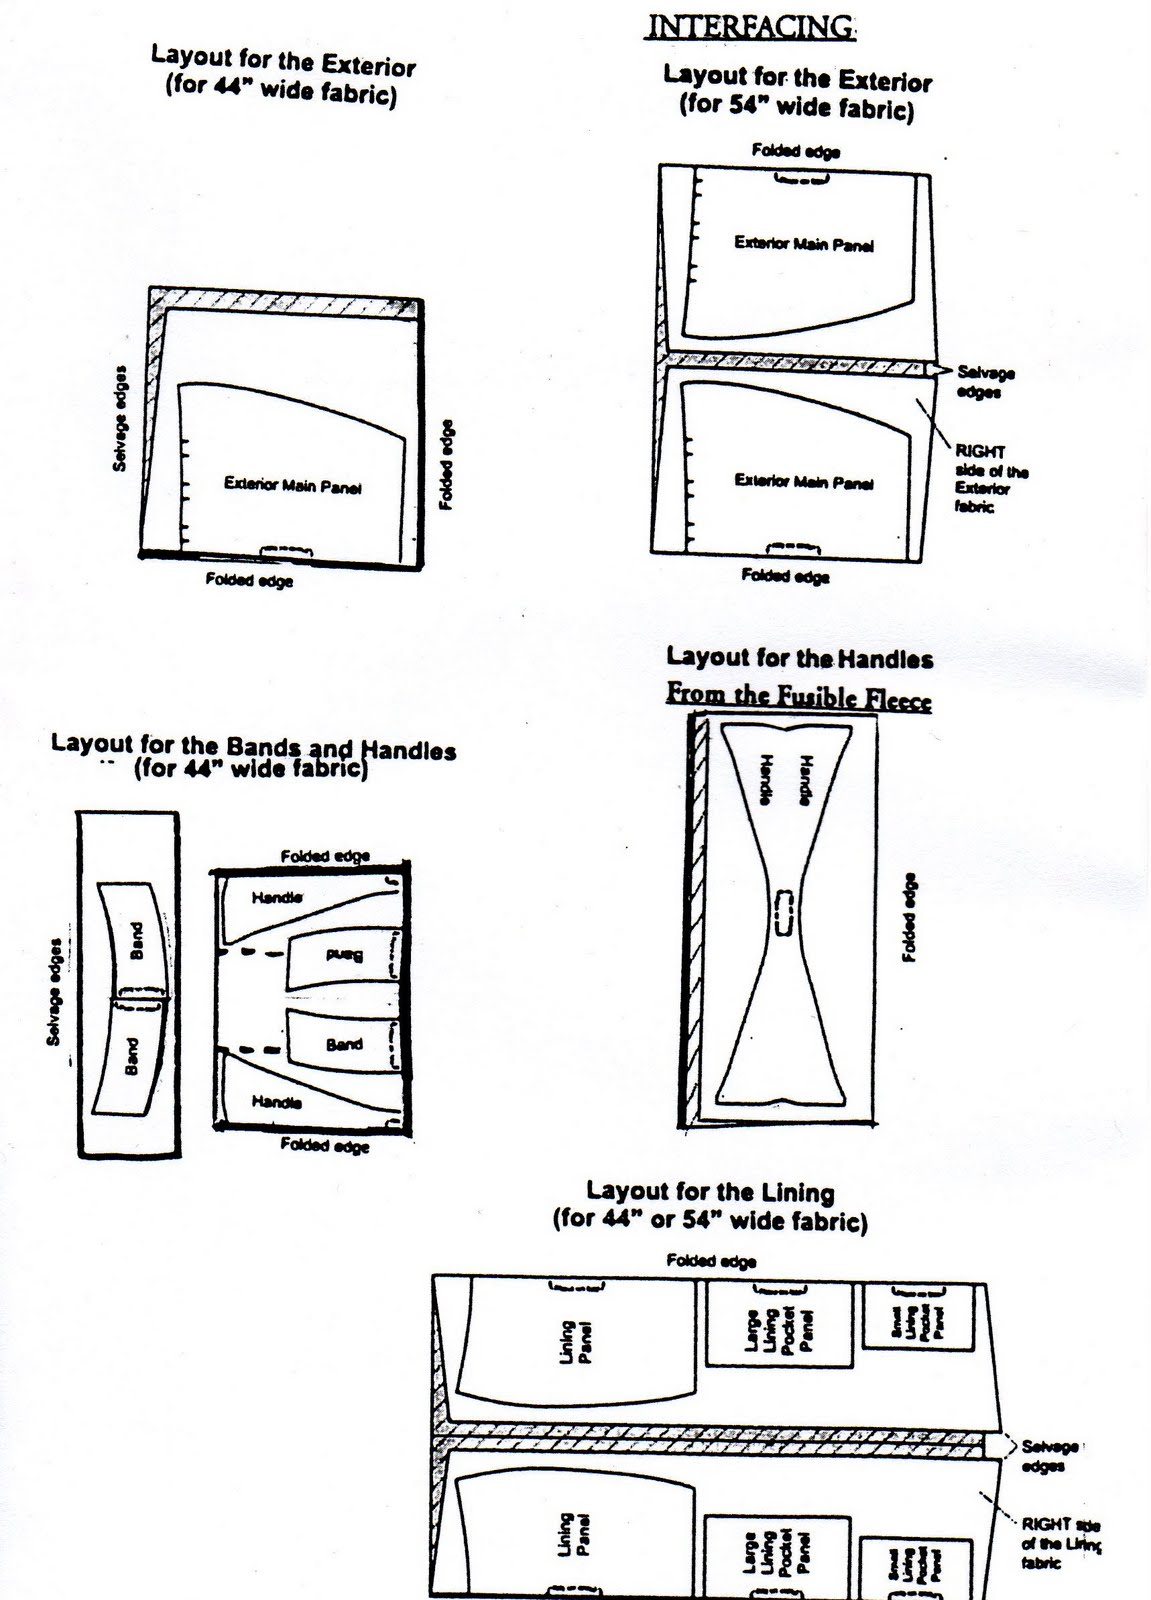 Sling Bag Pattern Free Download : little cut and paste job I know it could be cleaner but I m not